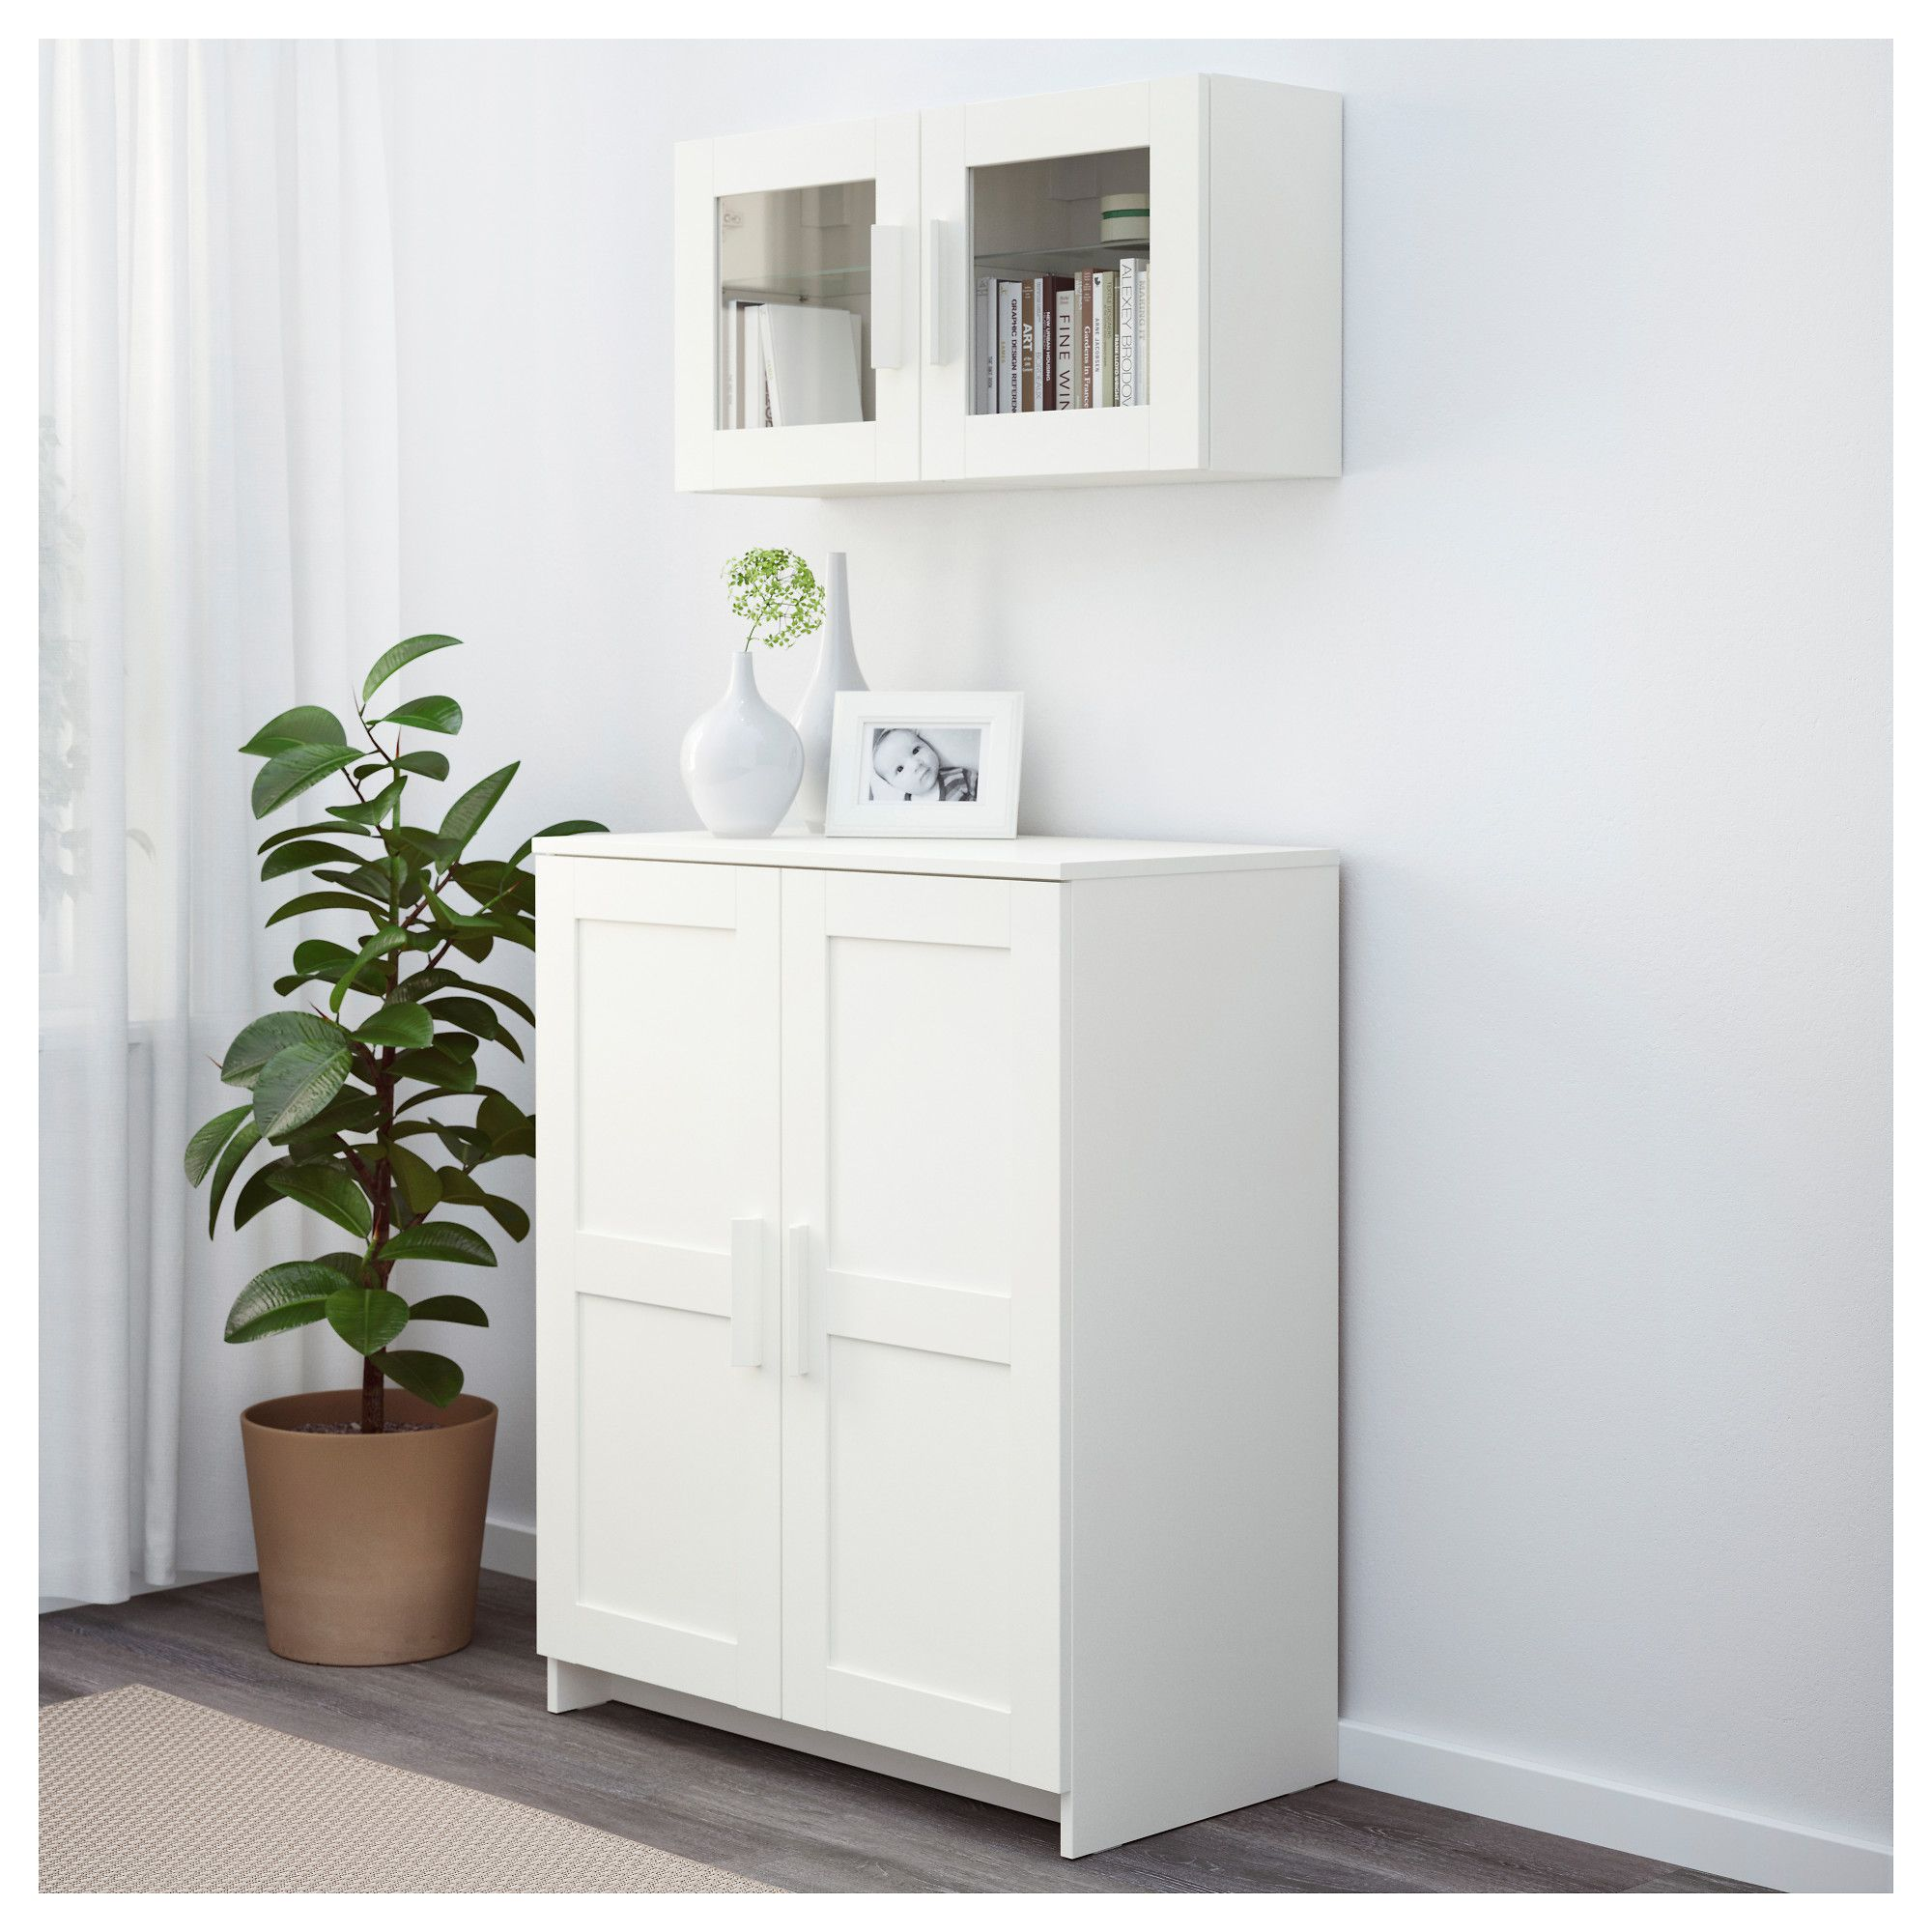 Best Brimnes Cabinet With Doors White Ikea Cabinet Doors 400 x 300